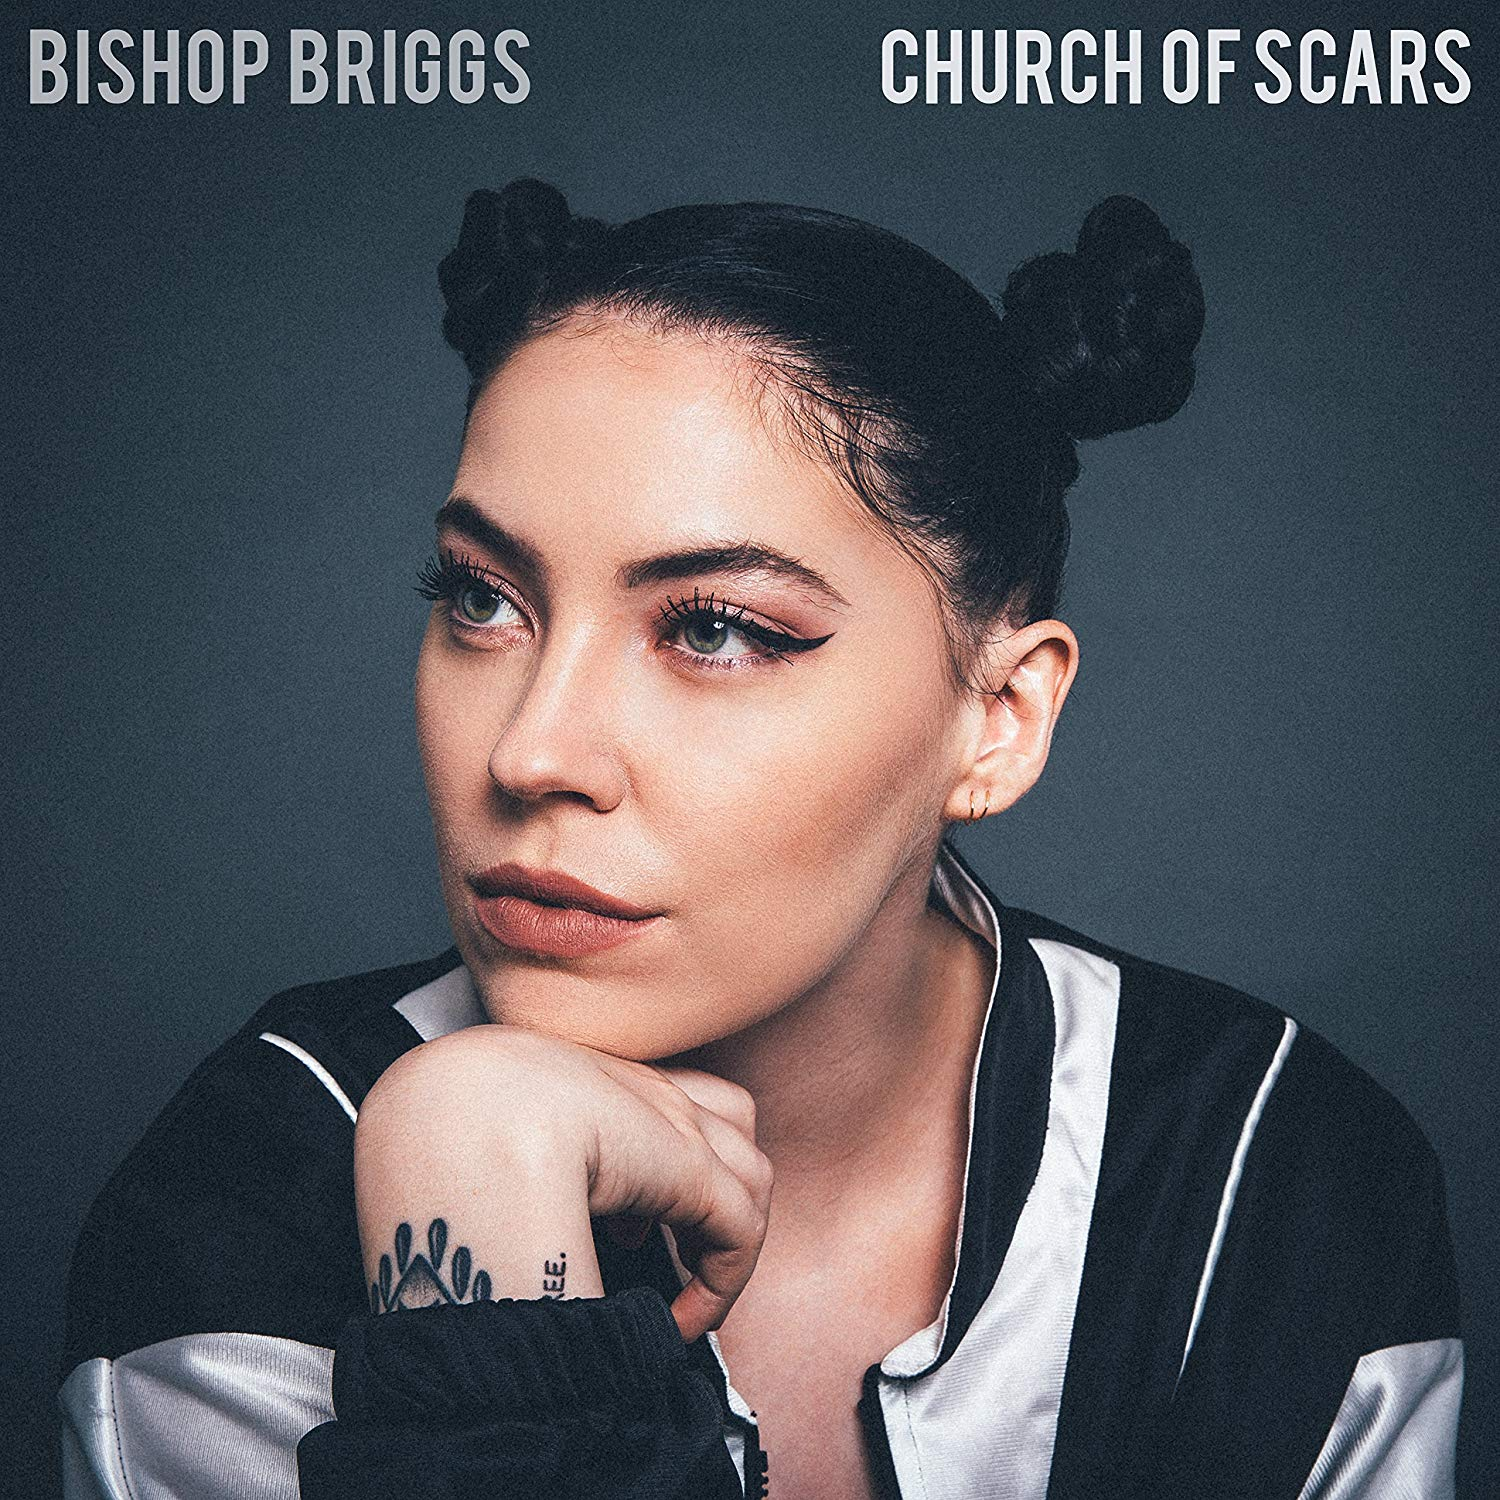 Bishop Briggs Church of Scars